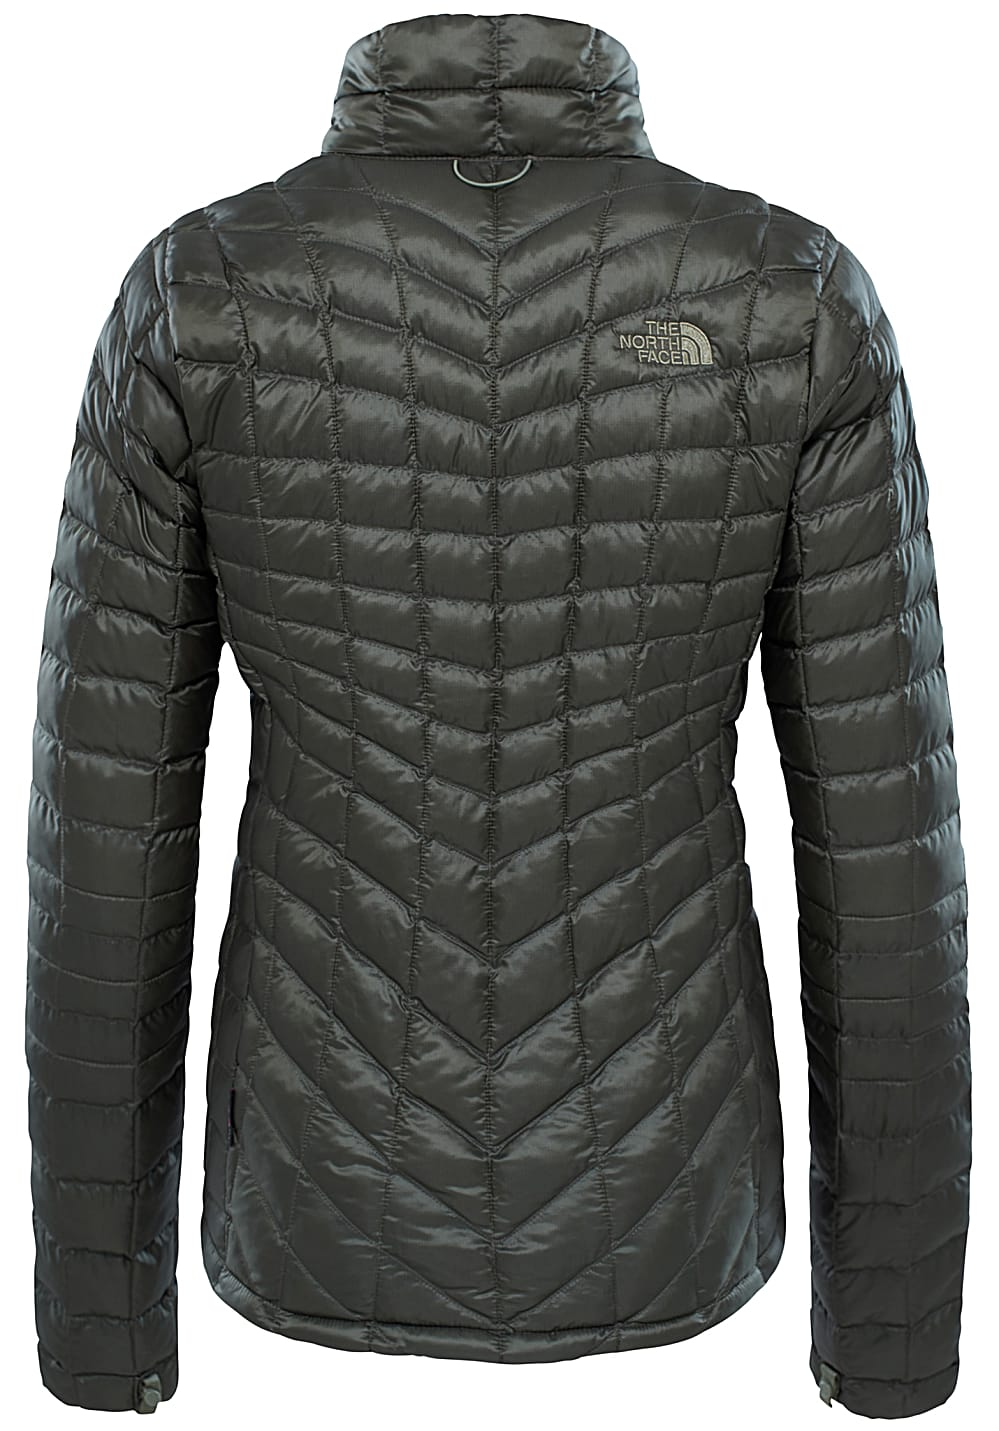 c7b4cc4678a ... THE NORTH FACE Thermoball Z-In - Outdoor Jacket for Women - Green. Back  to Overview. 1  2. Previous